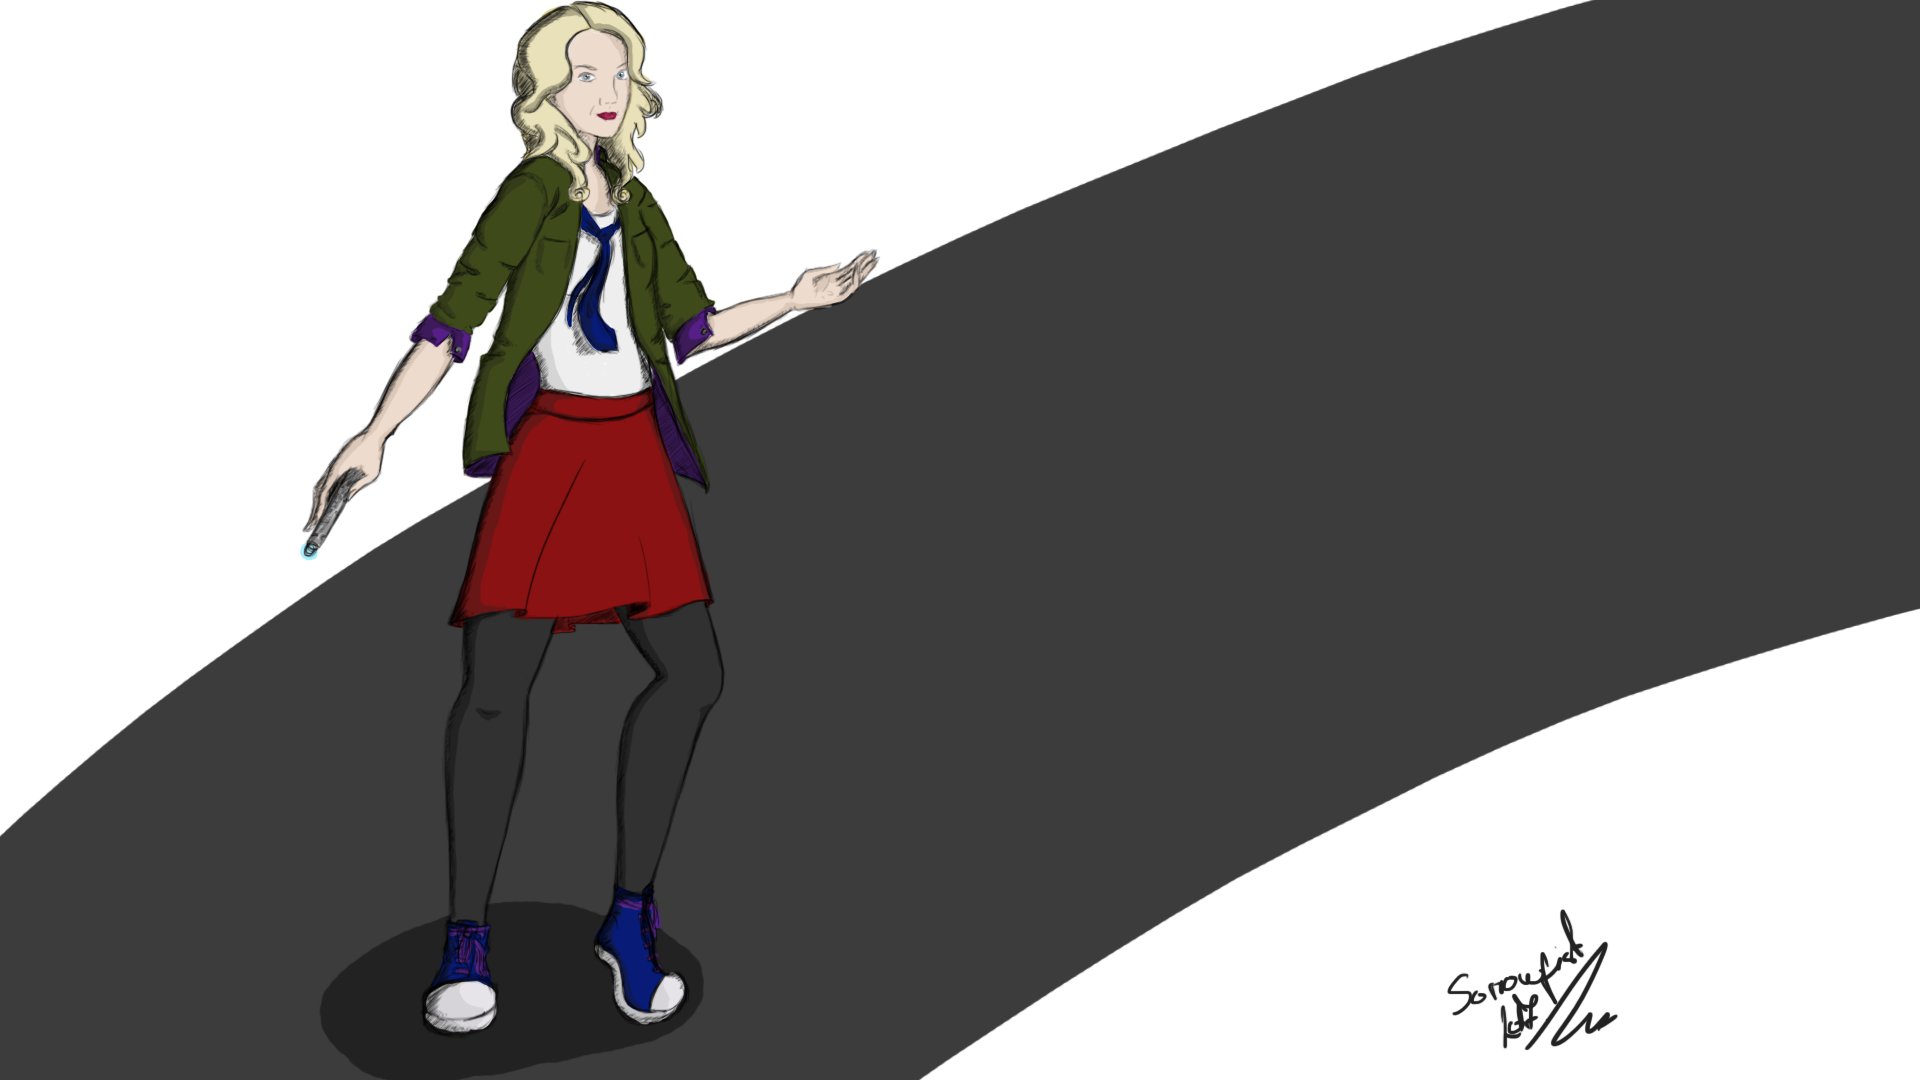 Evana Lynch as The Doctor